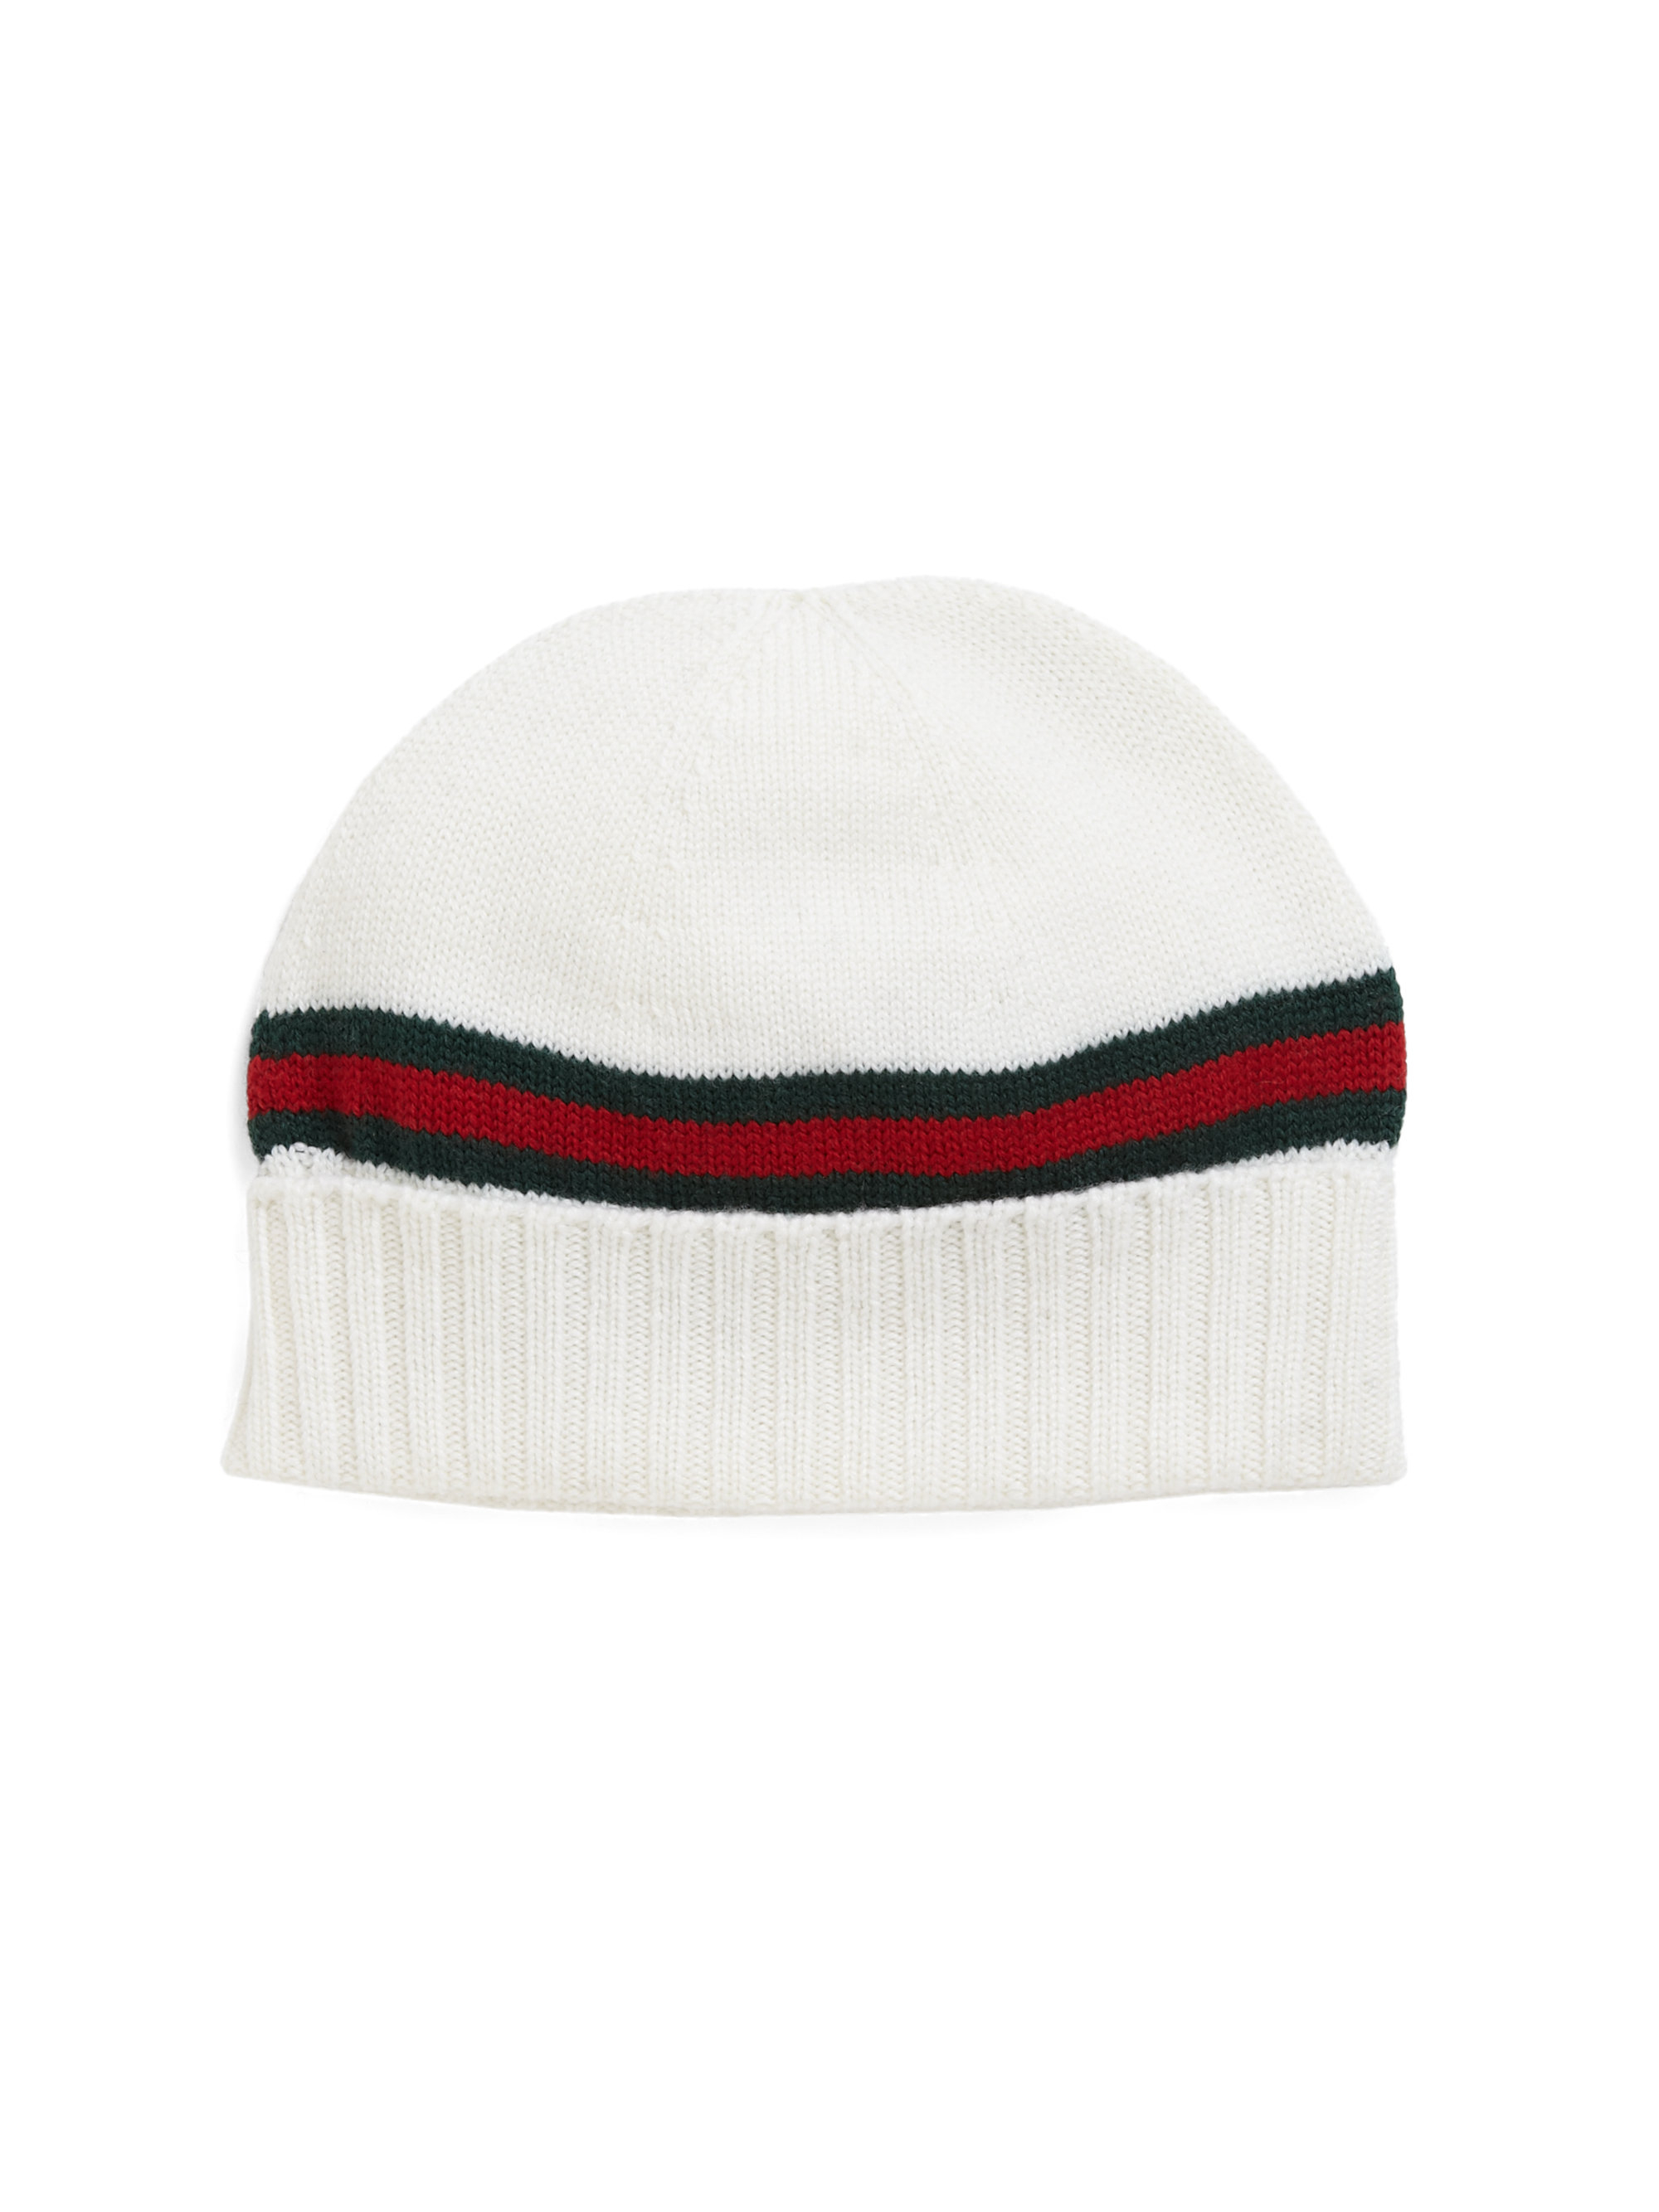 Lyst - Gucci Knit Hat in Black for Men b88715e7f30